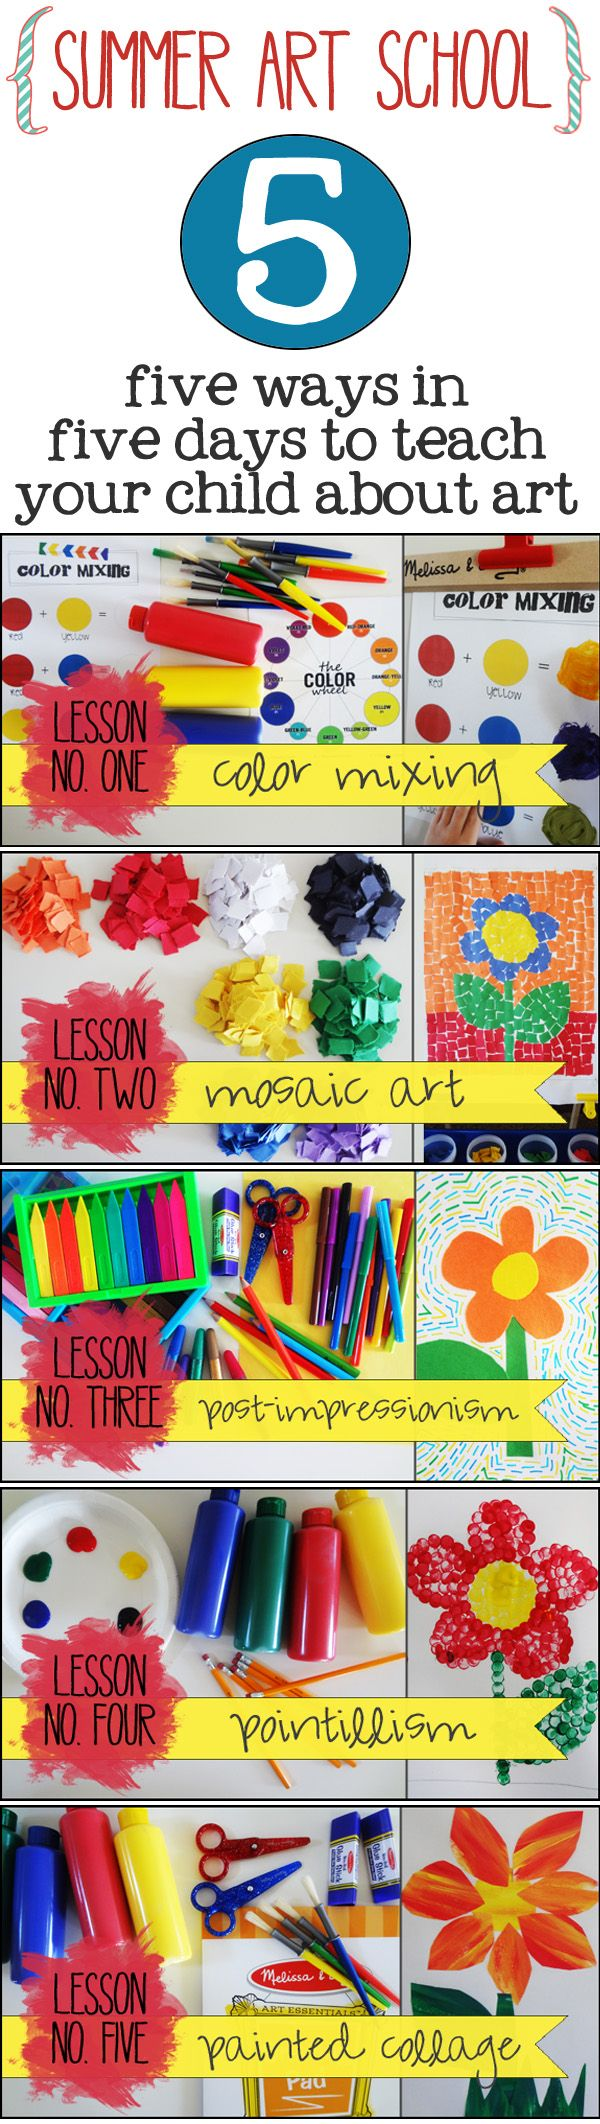 5 Art Appreciation lessons for summer learning #summerfun #oamc